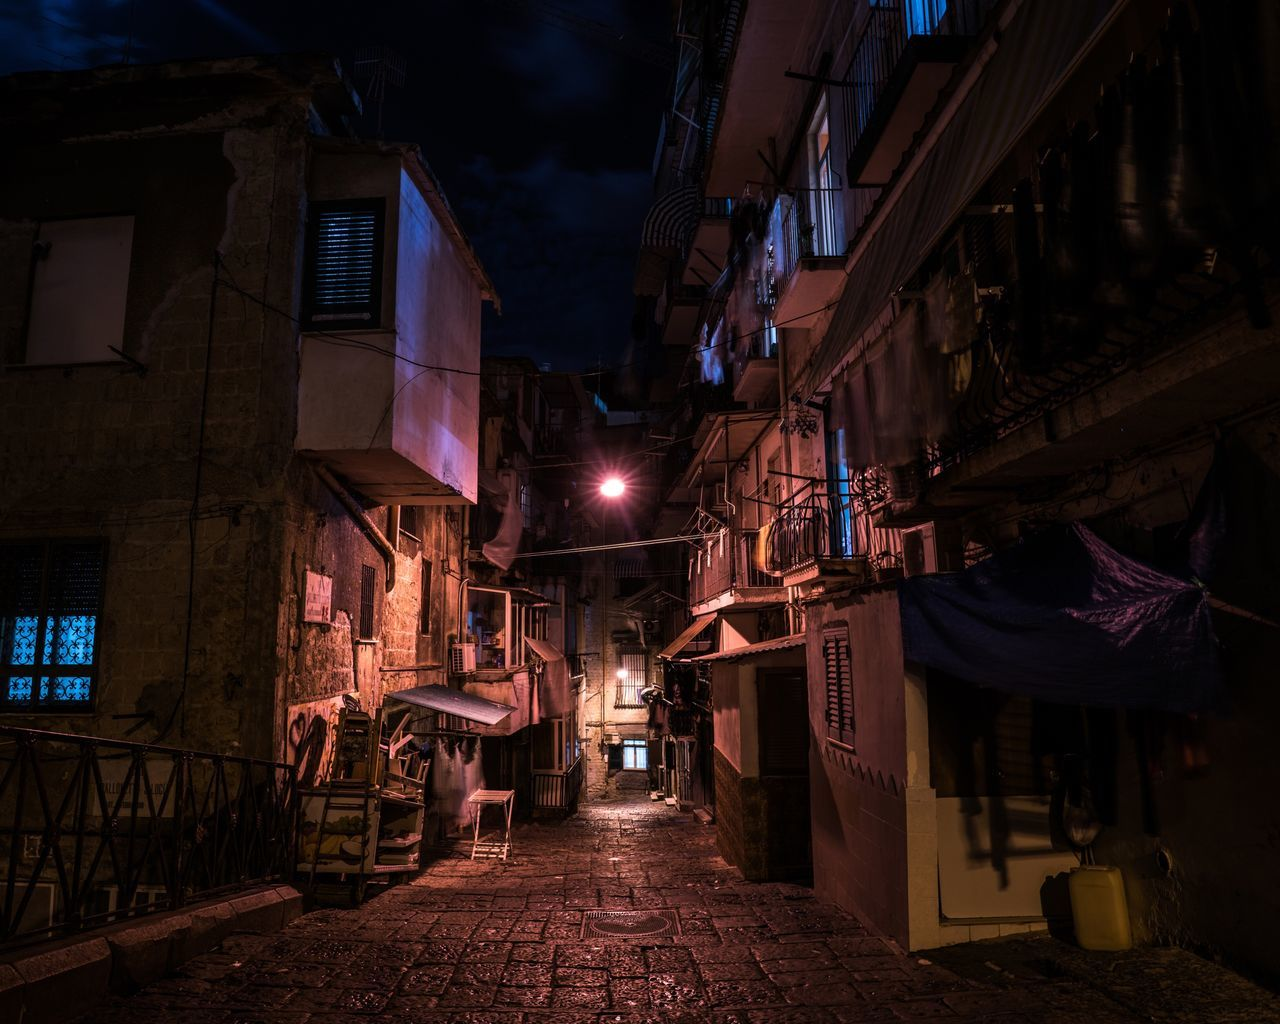 Napoleatan Order. Night Illuminated No People Architecture Outdoors Dark Darkness And Light Darkness Travel Destinations Napoli Naples Italy❤️ Bella Italia Italy Italia City Nightphotography Night Lights Alley Dark Photography Messy Travel Traveling Europe You Want It Darker